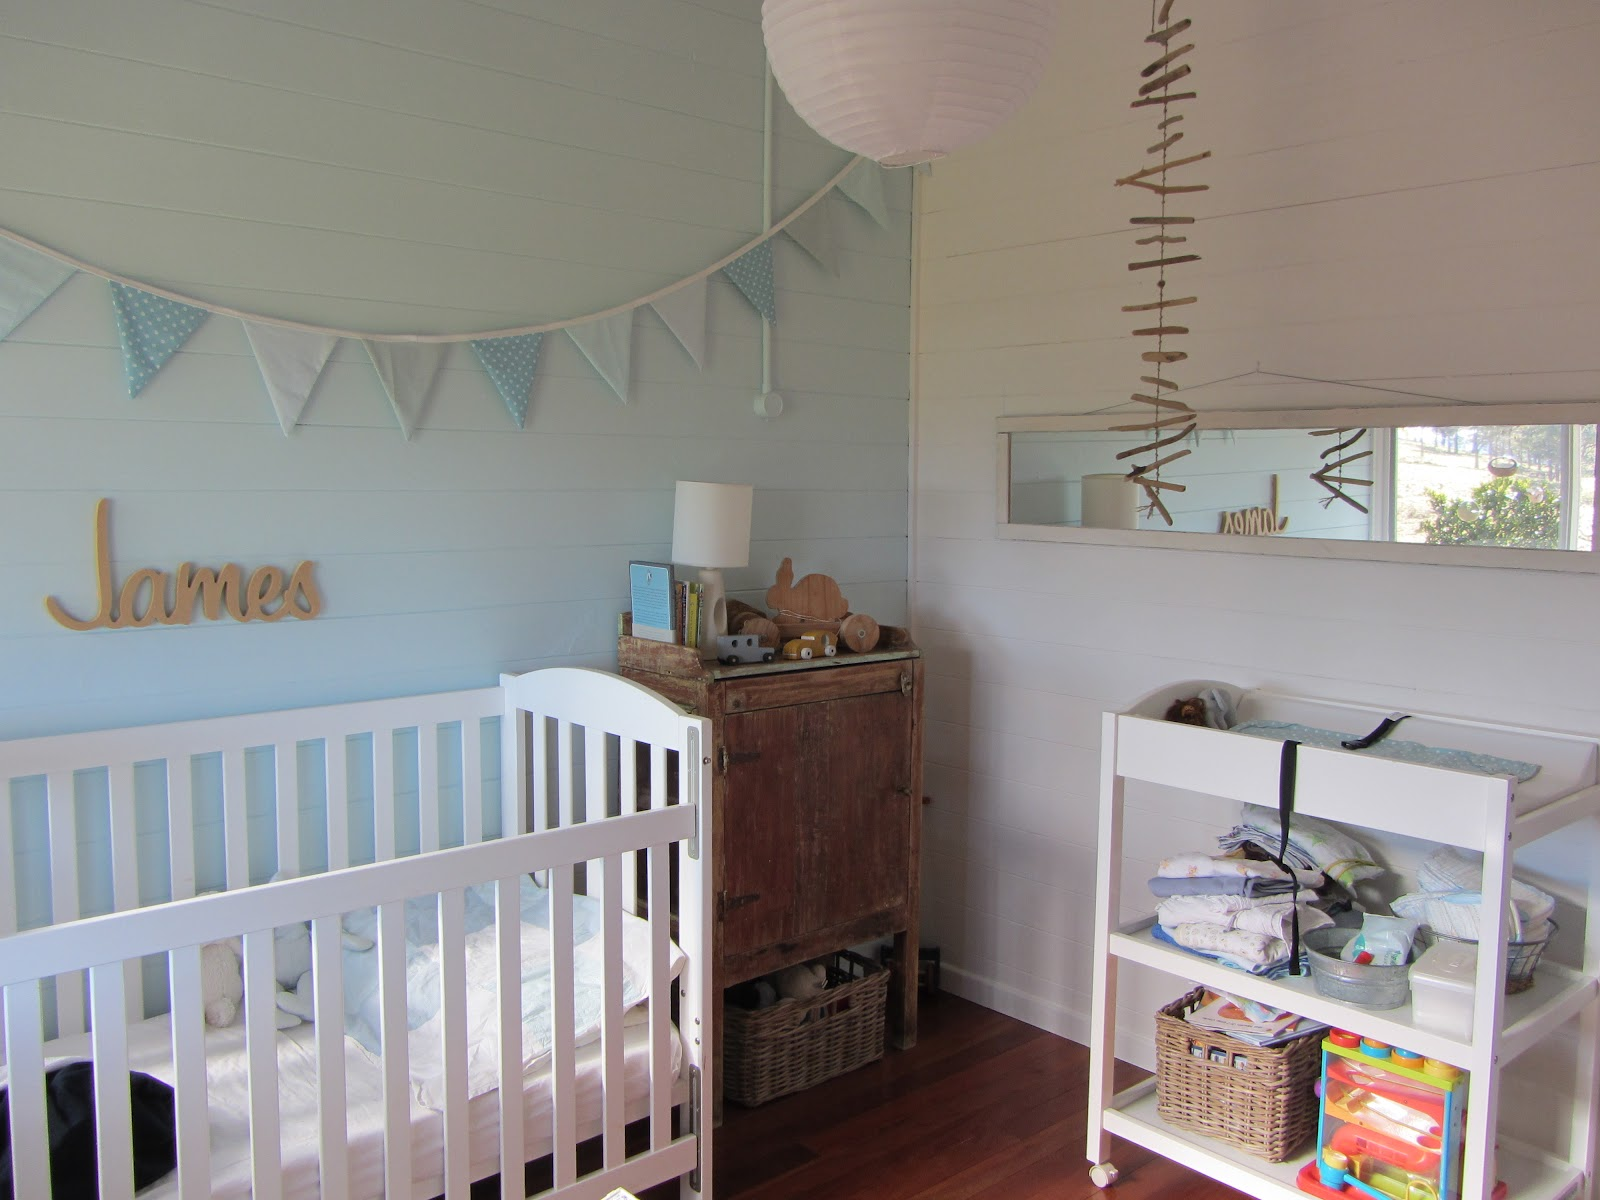 Thom haus handmade soft colours for a baby boy s bedroom - Bedroom design for baby boy ...